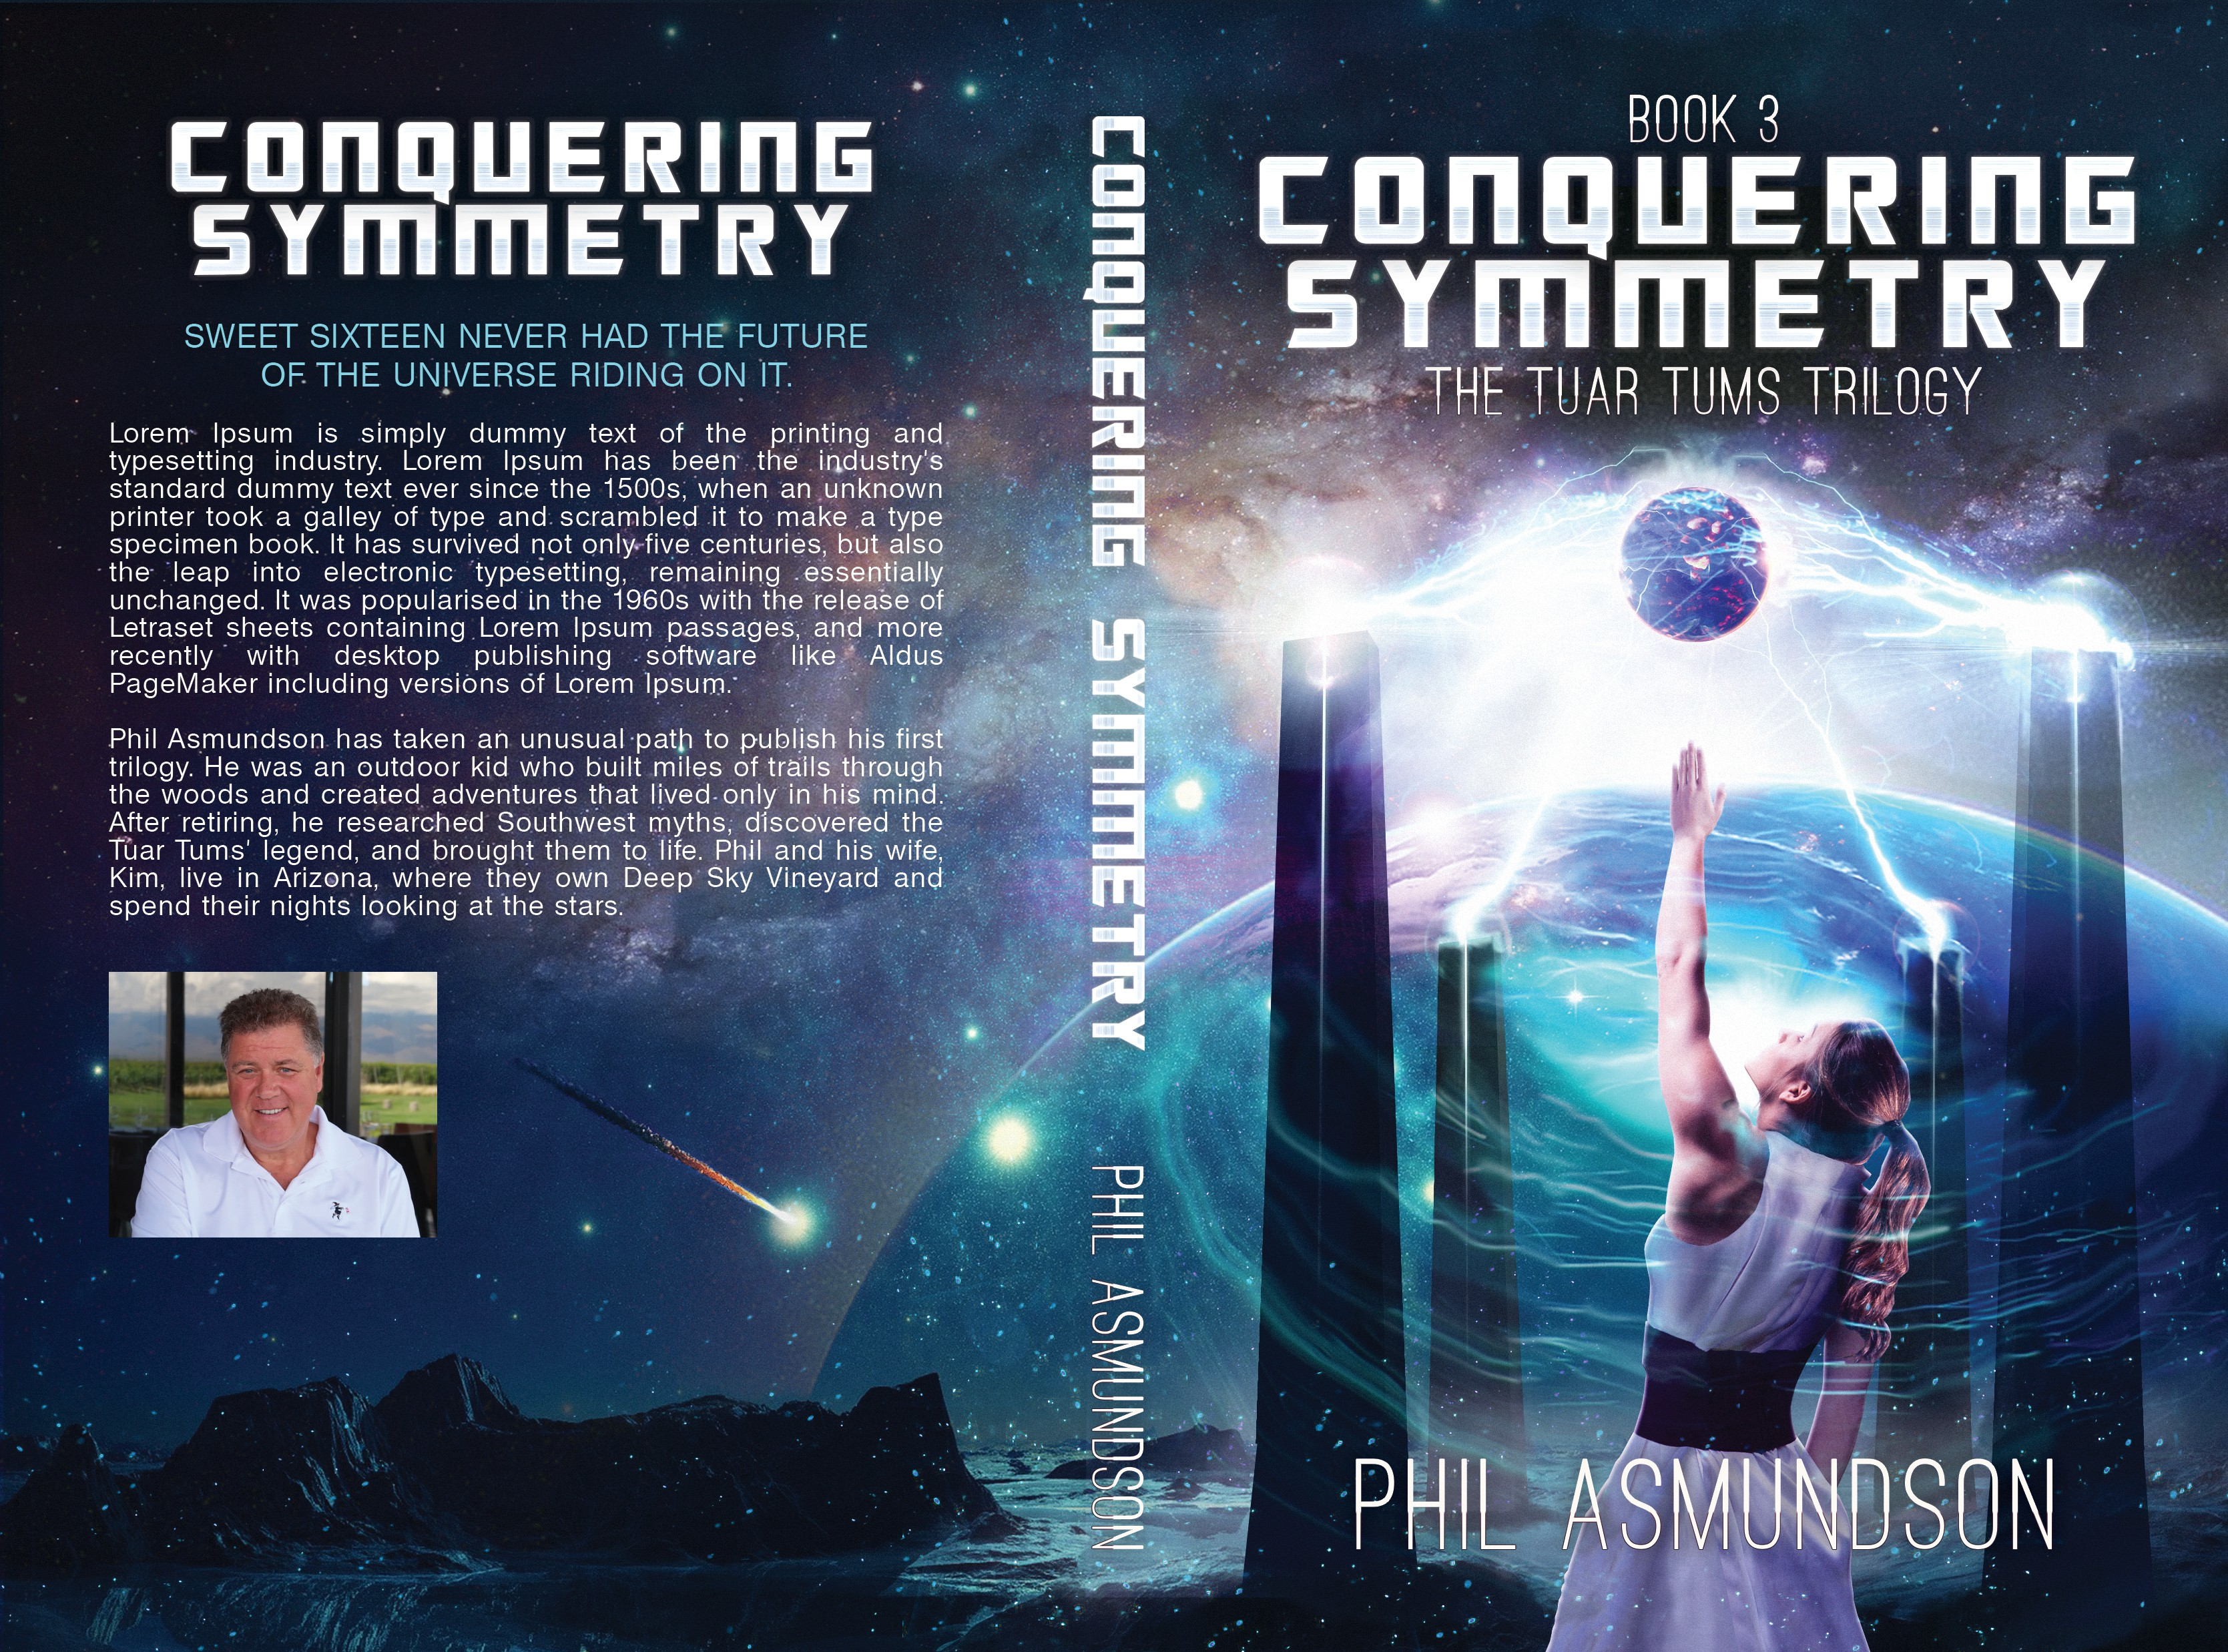 Book cover for third book in hard science fiction novel trilogy